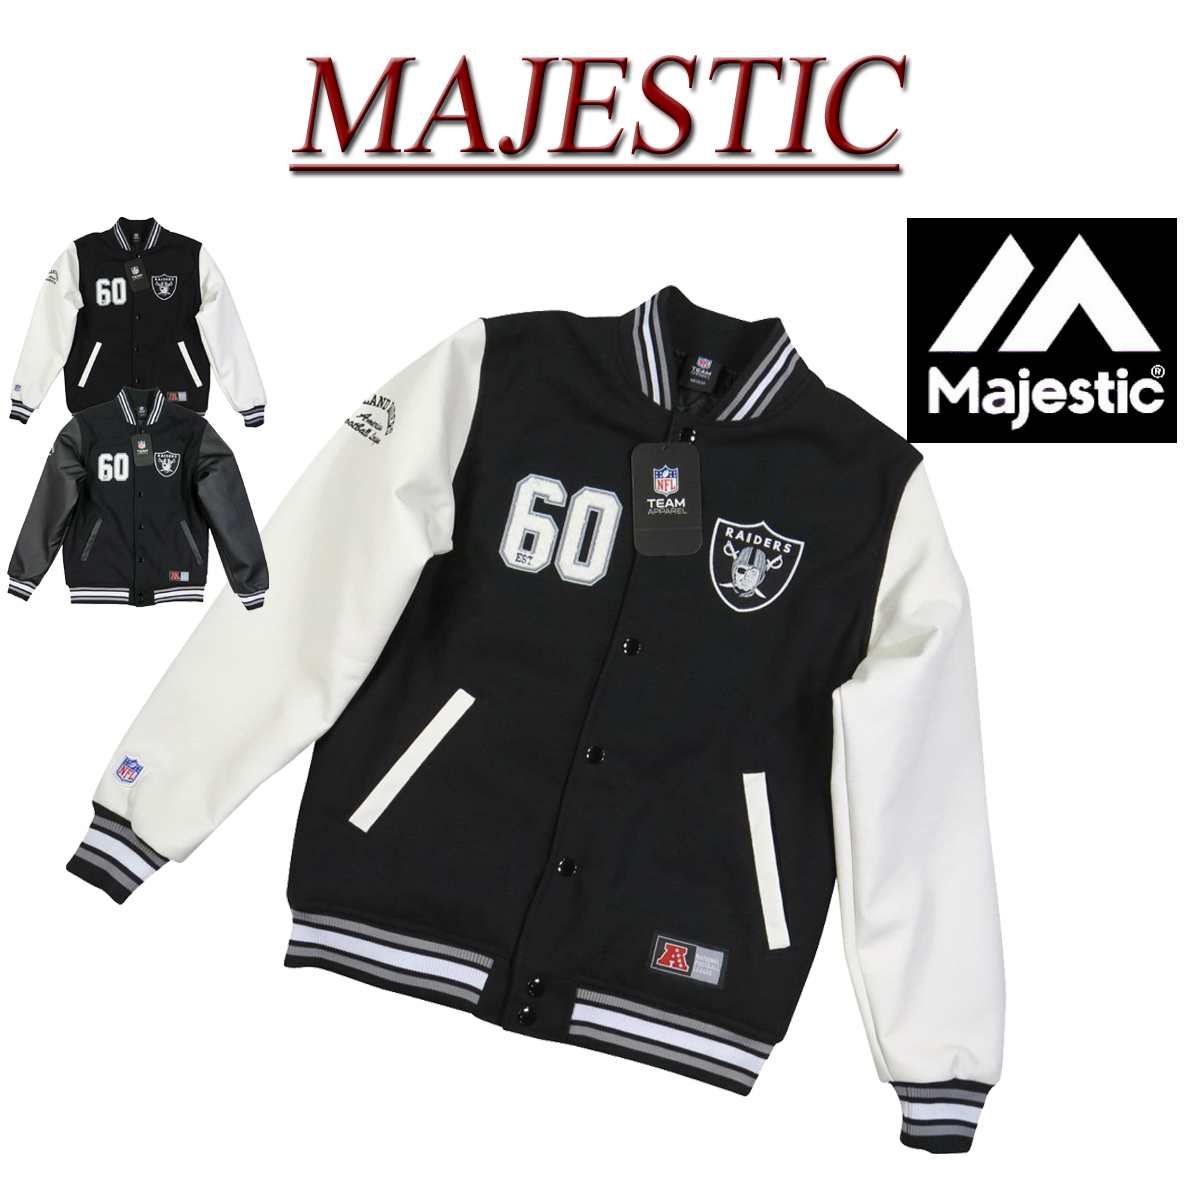 best website 12bec f5a06 Stadium jacket award jacket with ib801 new article MAJESTIC Oakland Raiders  PU leather X melton wool award jacket OLR0011 FM23-OR8F01 men majestic NFL  ...